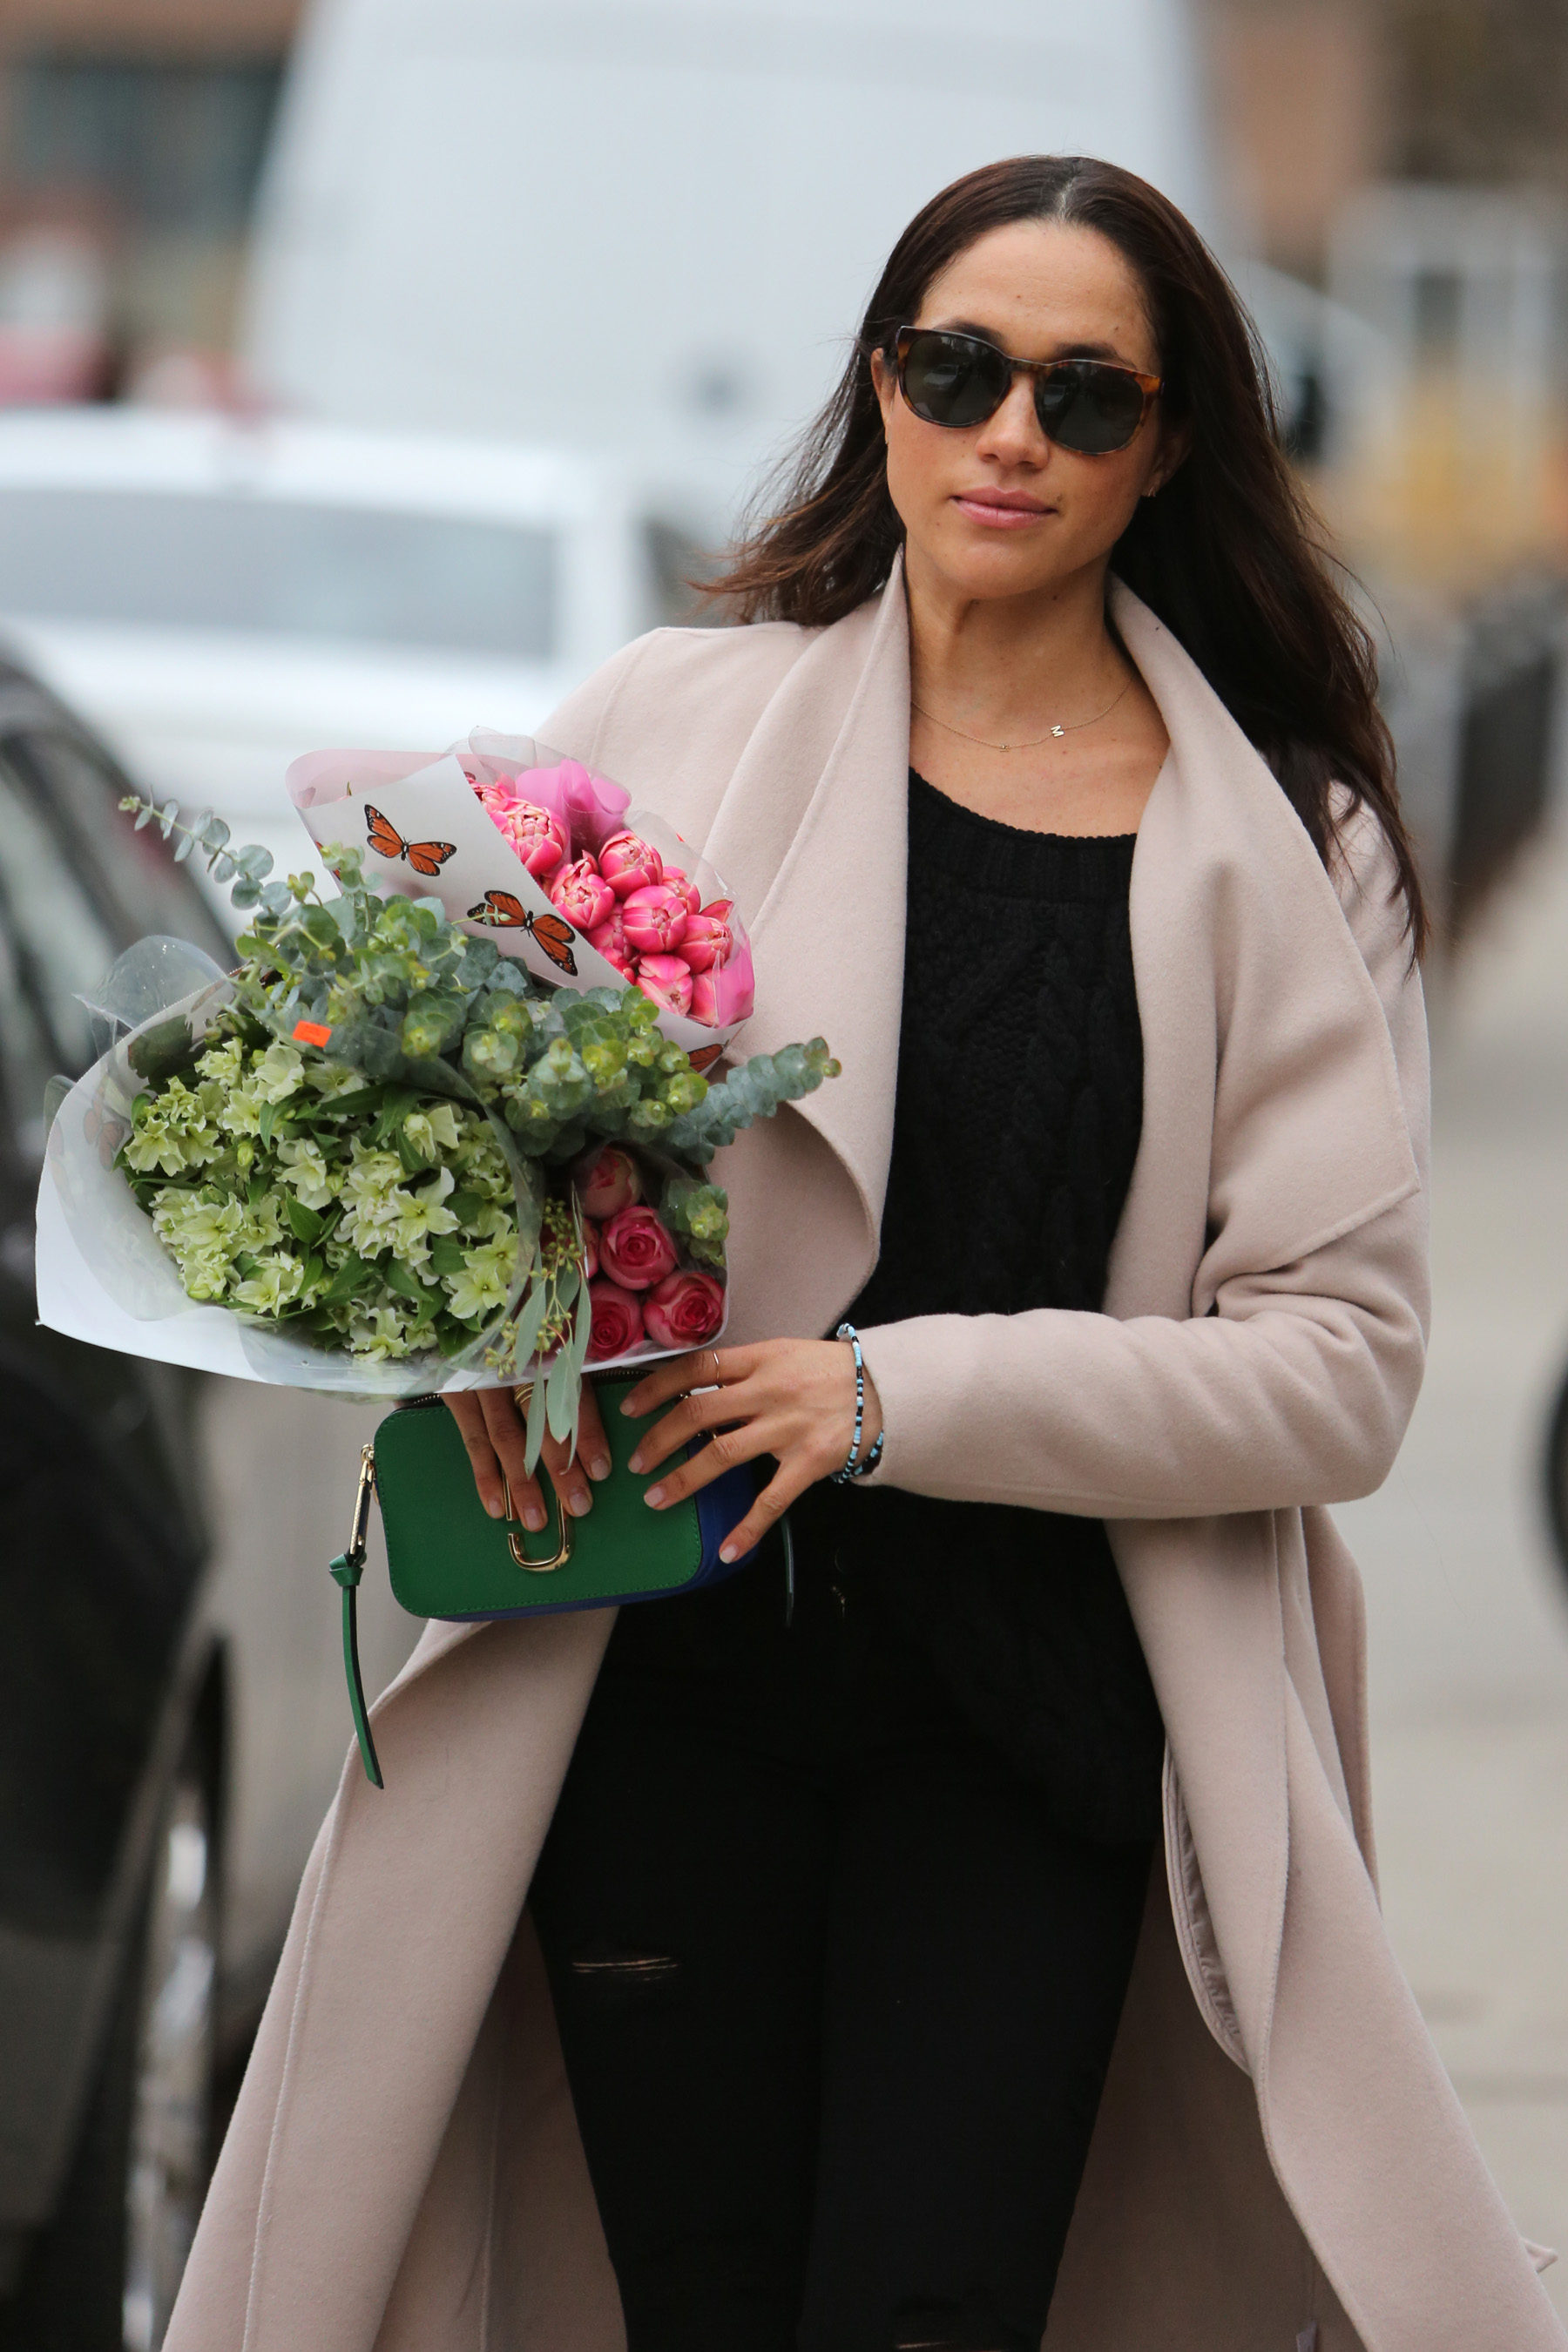 EXCLUSIVE: **PREMIUM EXCLUSIVE RATES APPLY**NO SUBSCRIPTIONS** Prince Harry's girlfriend and Suits actress, Meghan Markle is seen shopping for flowers in Toronto. Meghan, who was happy to be photographed leaving an up-market flower shop, greeted the photographers as they photographed her. The Prince is currently on his last day of a grueling tour in the Caribbean. It has been reported that Meghan is to meet Prince Harry for a vacation before Christmas. Taken December 3rd 2016 <P> Pictured: Meghan Markle <B>Ref: SPL1358694  051216   EXCLUSIVE</B><BR/> Picture by: Splash News<BR/> </P><P> <B>Splash News and Pictures</B><BR/> Los Angeles:310-821-2666<BR/> New York:212-619-2666<BR/> London:870-934-2666<BR/> <span id=